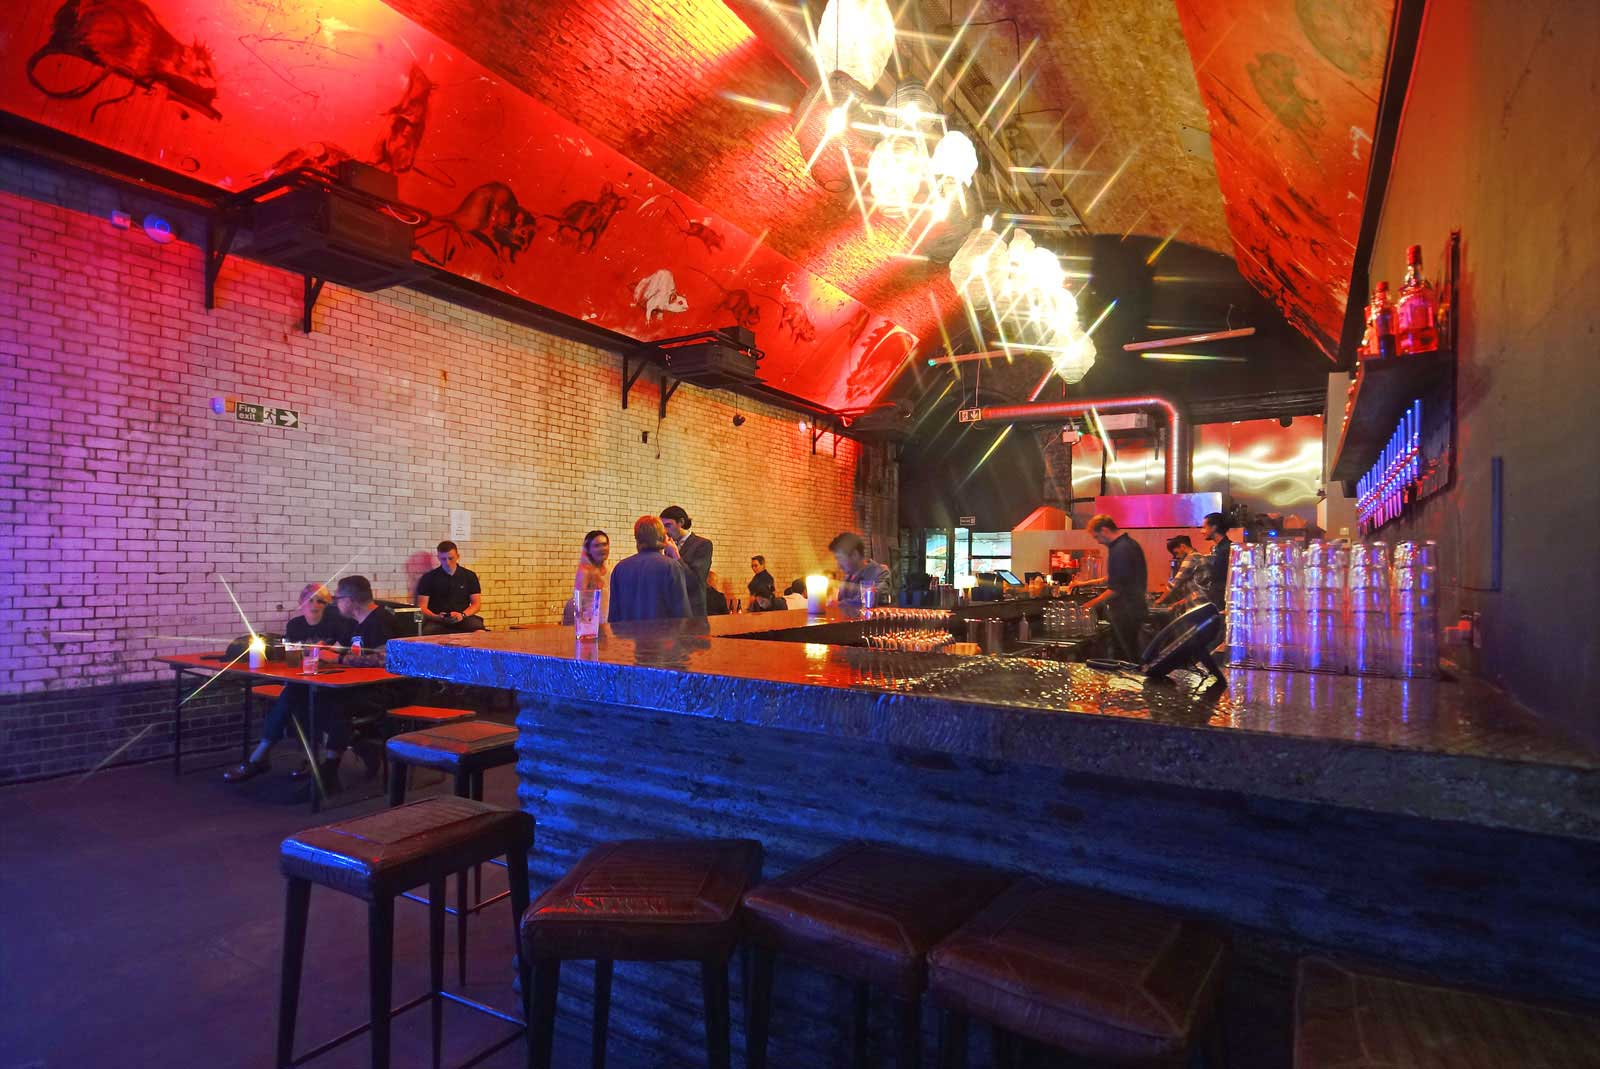 Full working bar at the London South Bank Event Venue represented for hire by VenuesLDN.co.uk